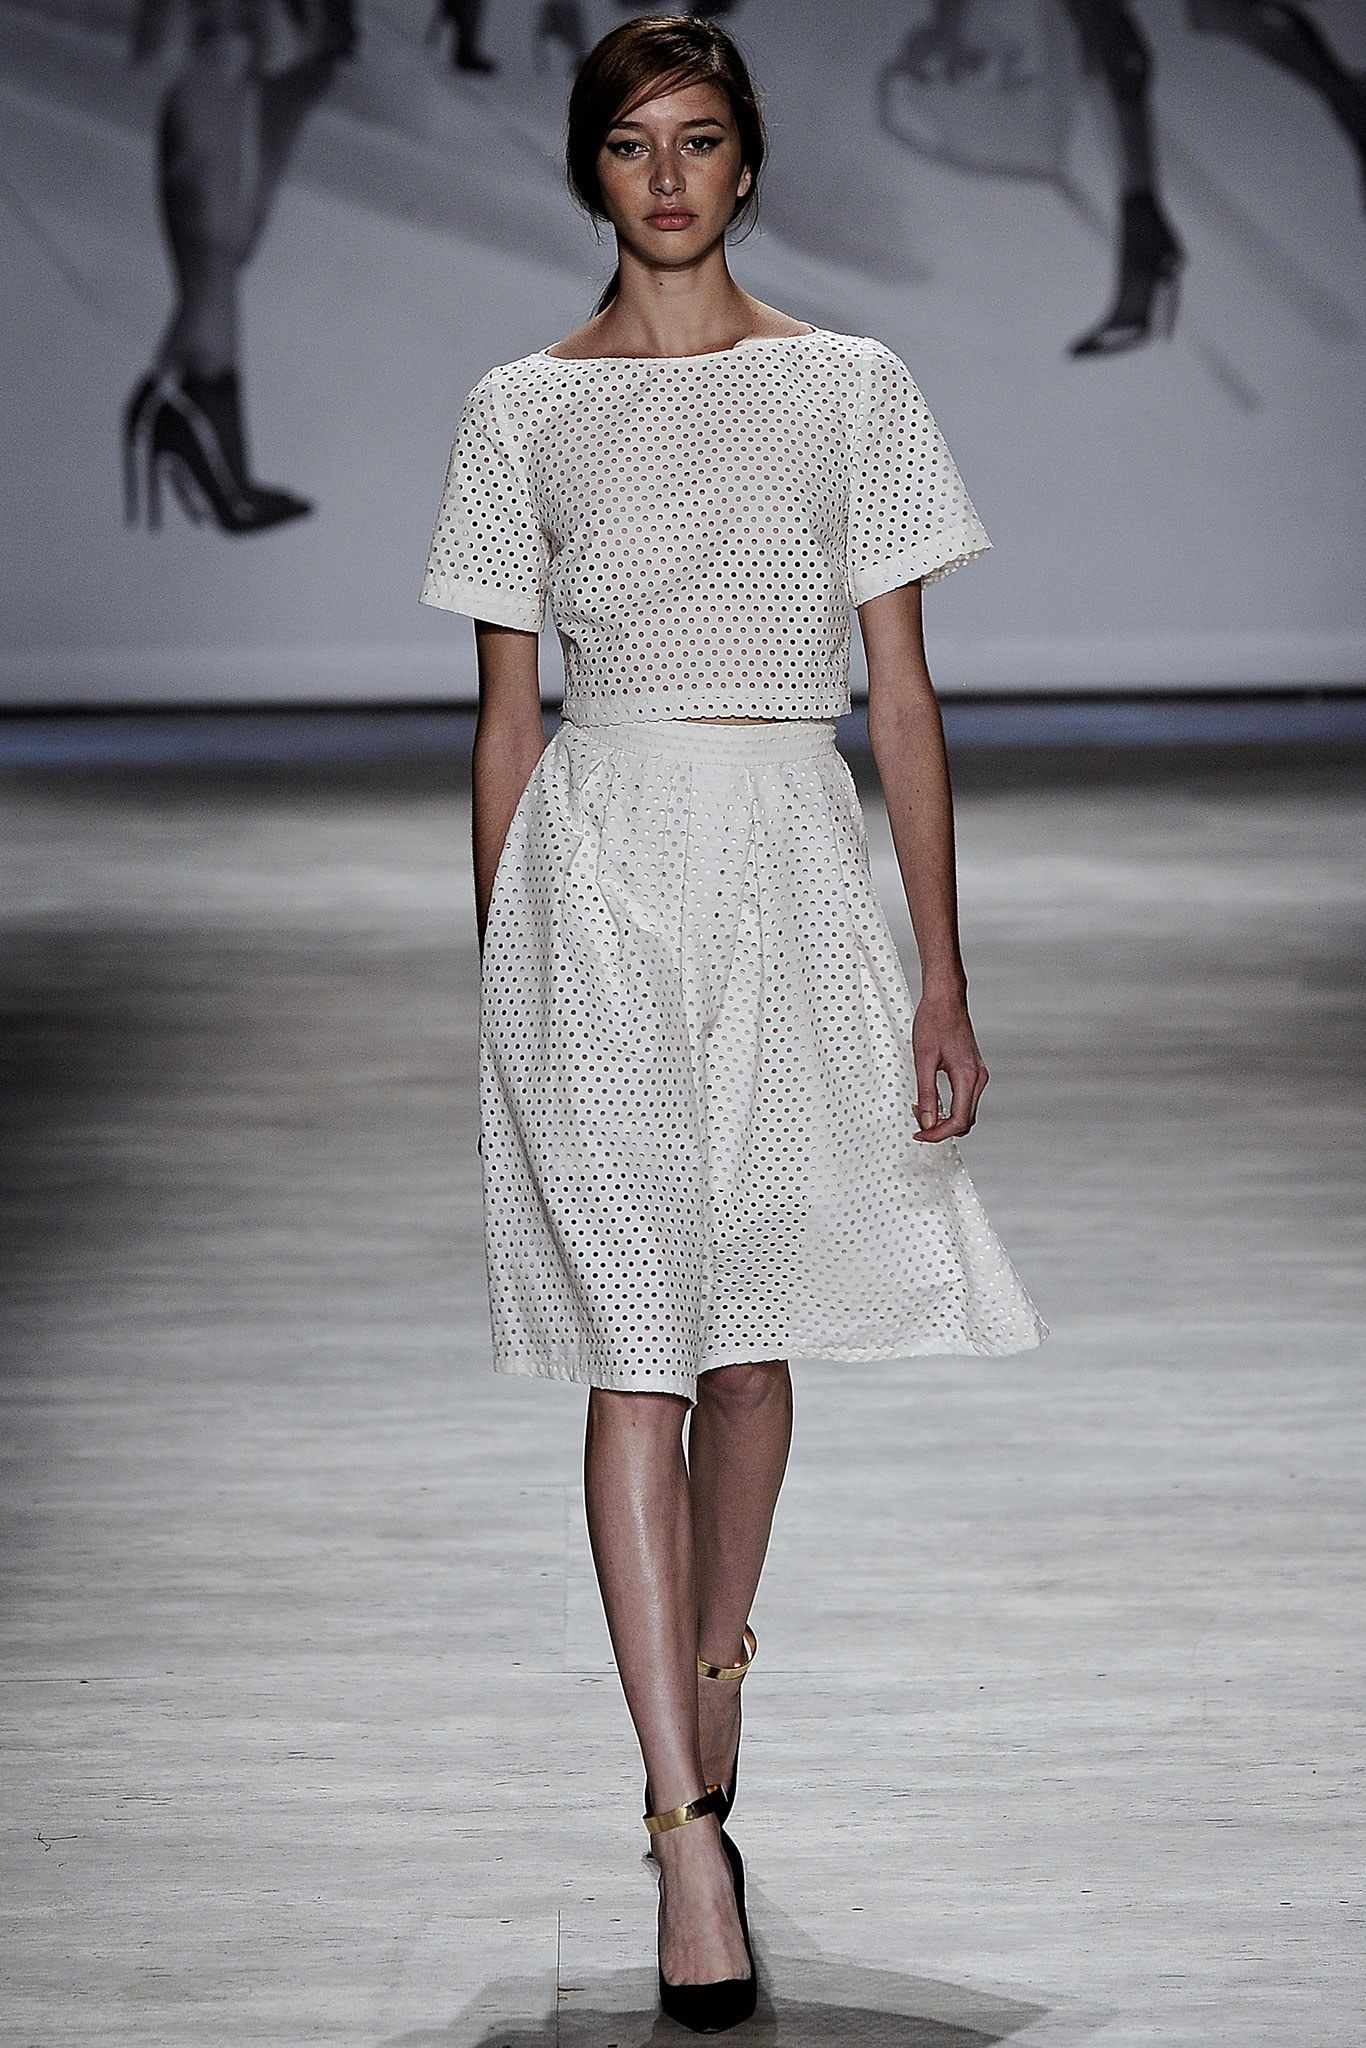 a41e541467 Lela Rose Spring 2015 Ready-to-Wear Fashion Show - Karime Bribiesca (The  Society)